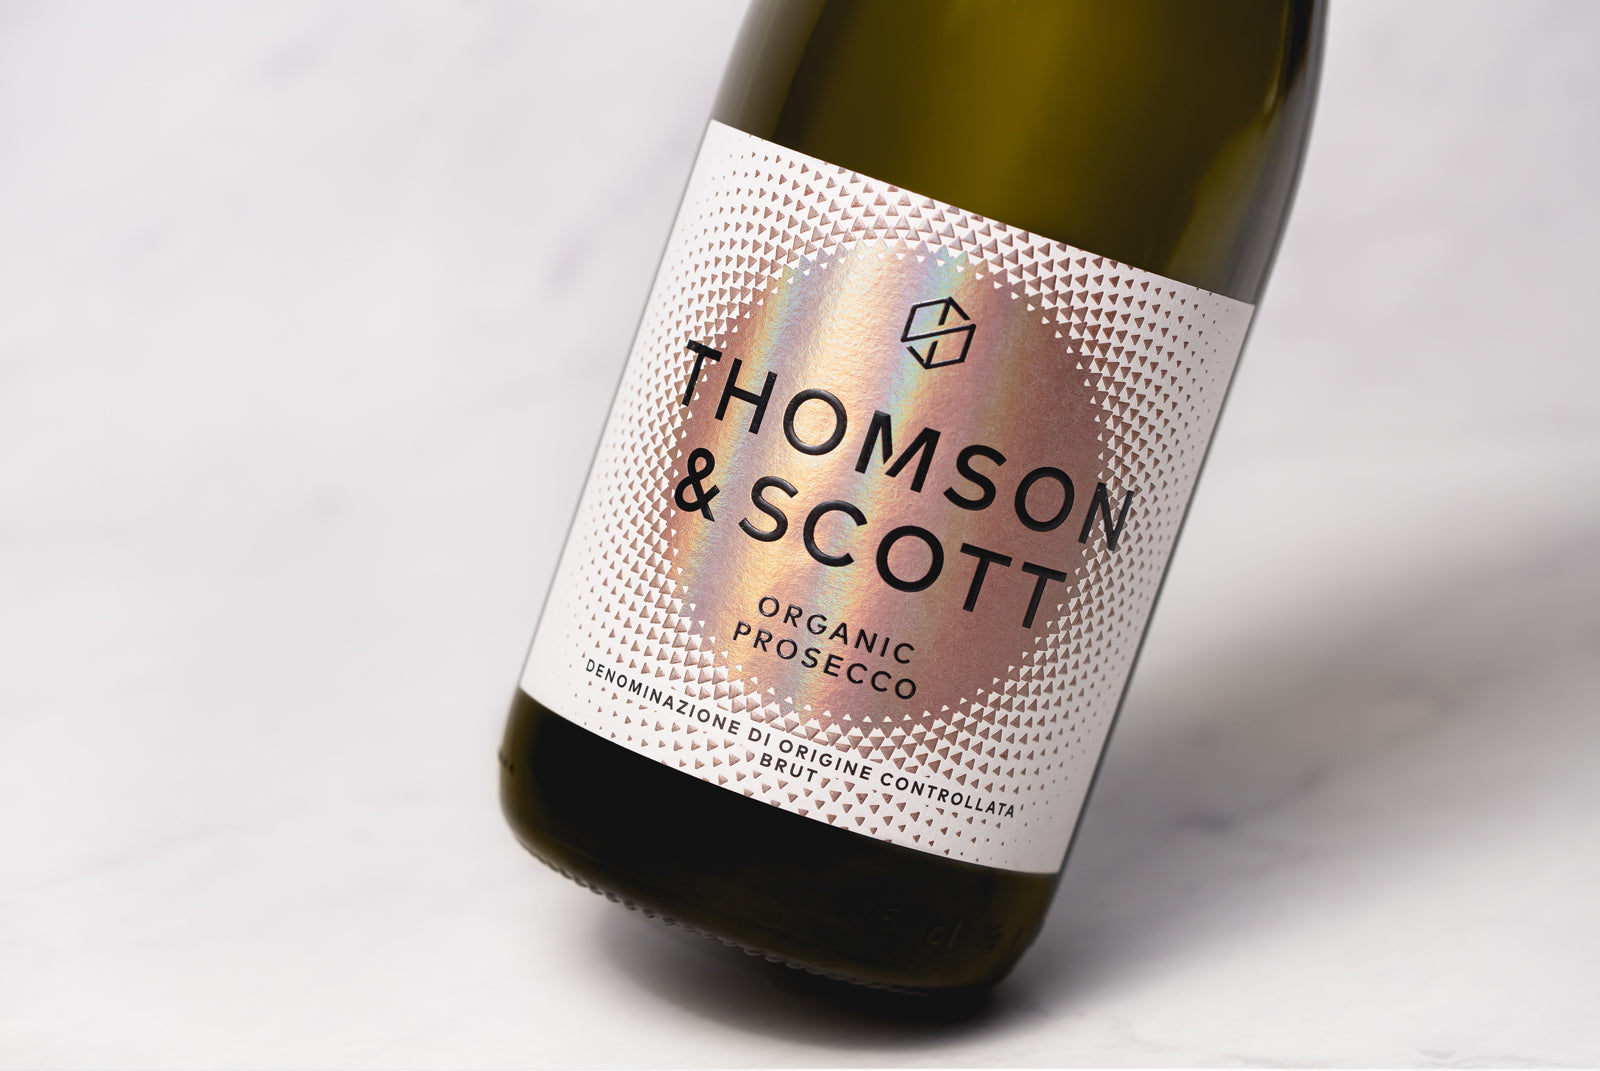 Thomson & Scott Prosecco